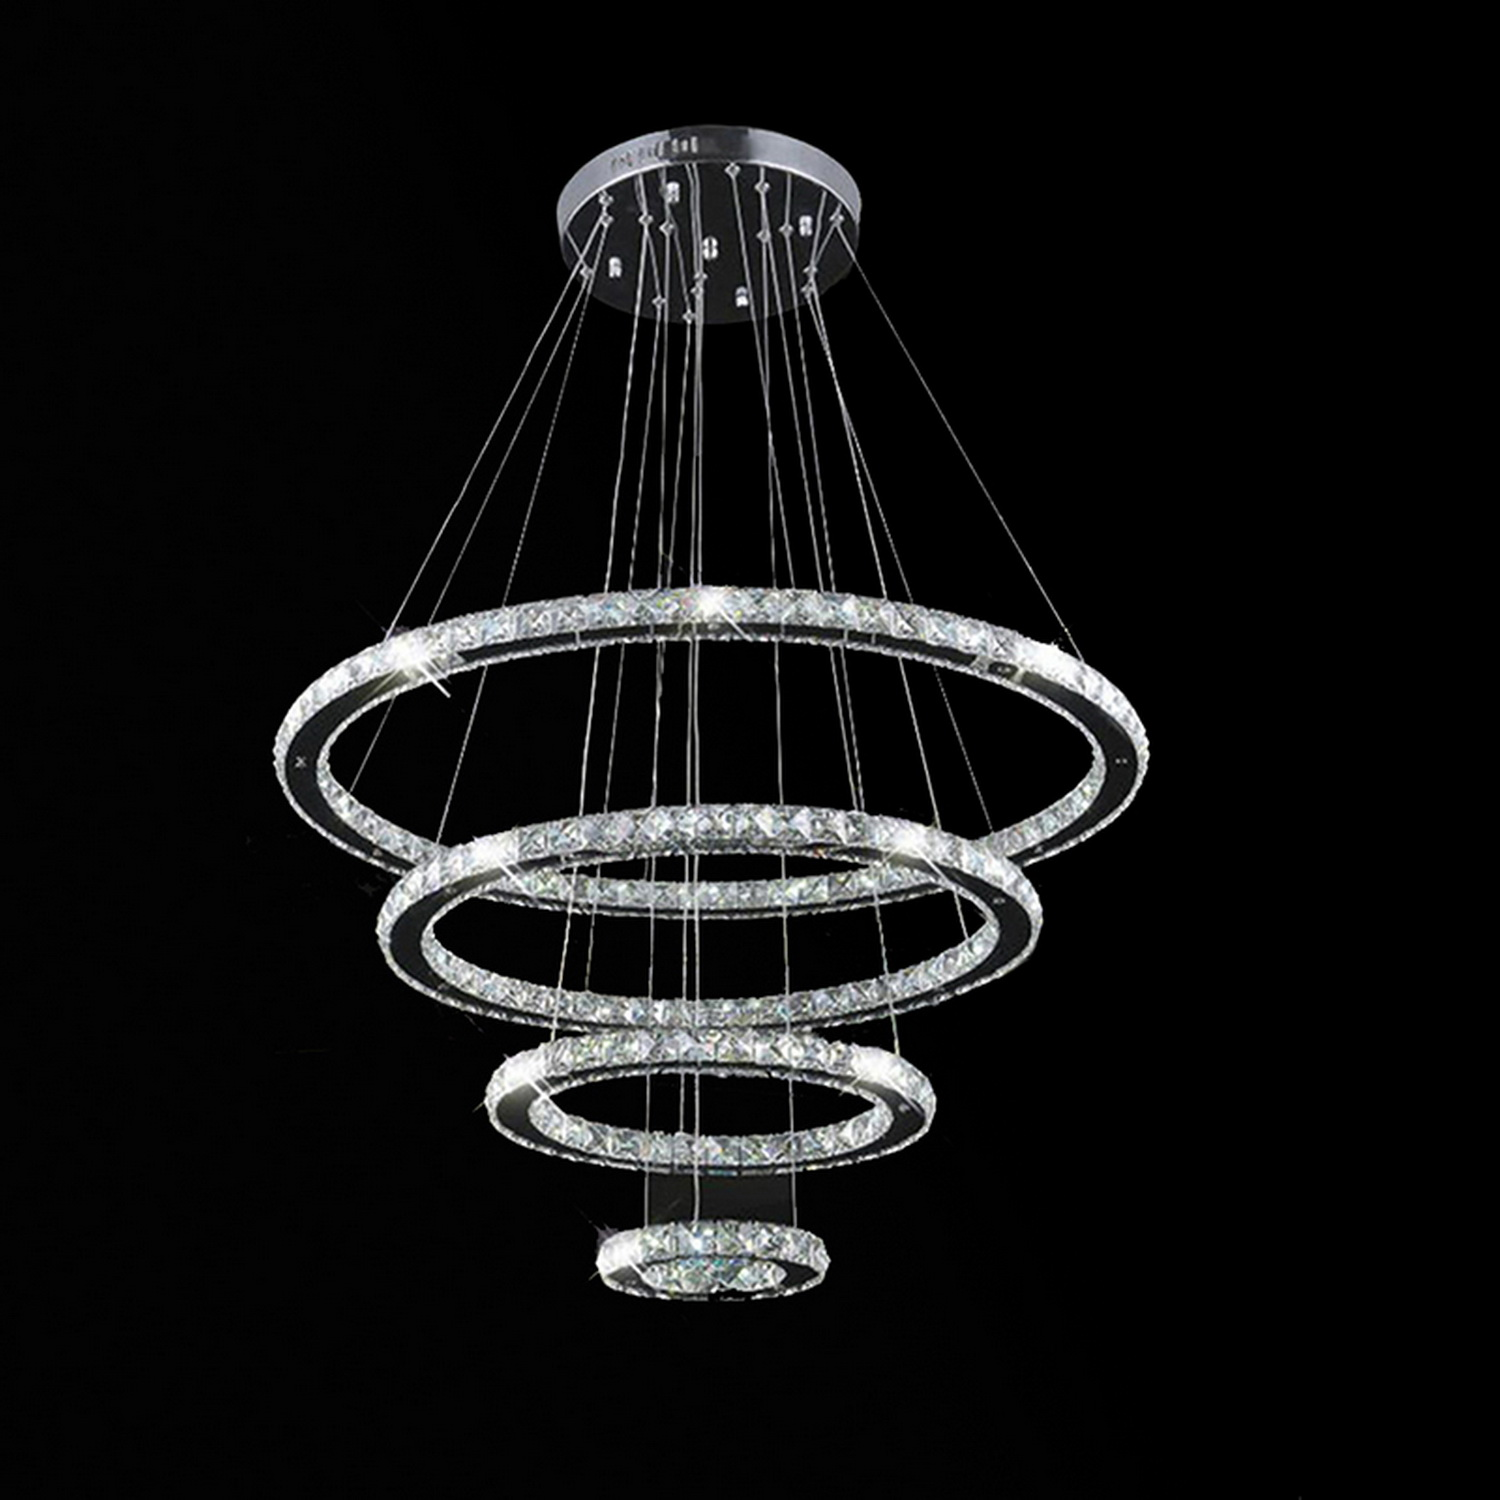 Led Light Fixture Pictures: Modern Galaxy Crystal Chandelier LED Lighting Fixture